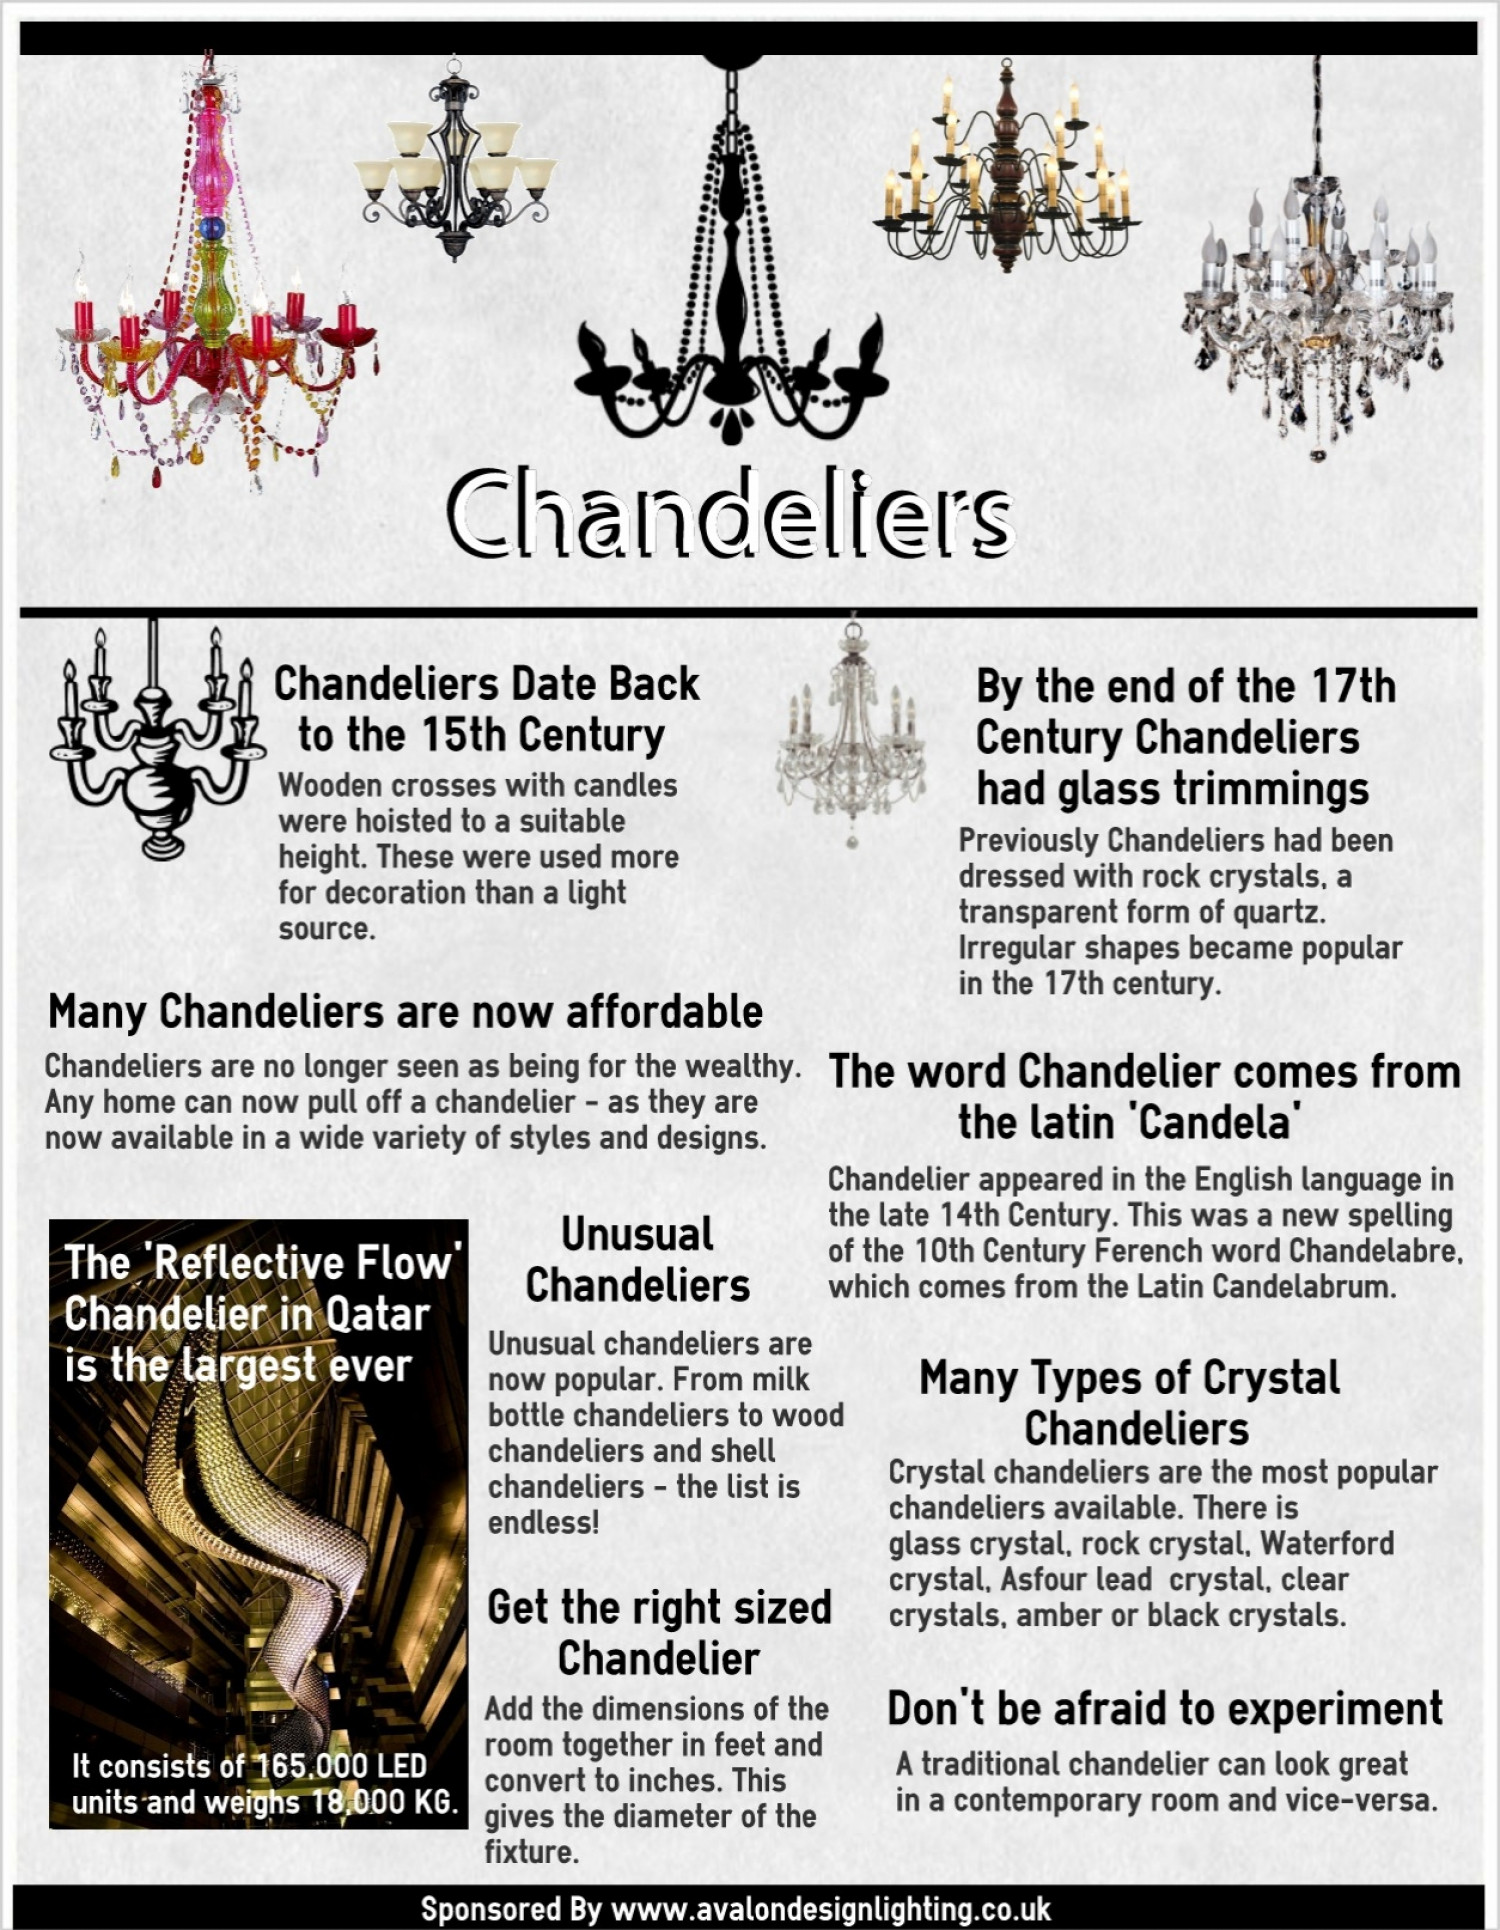 Chandelier Facts Infographic